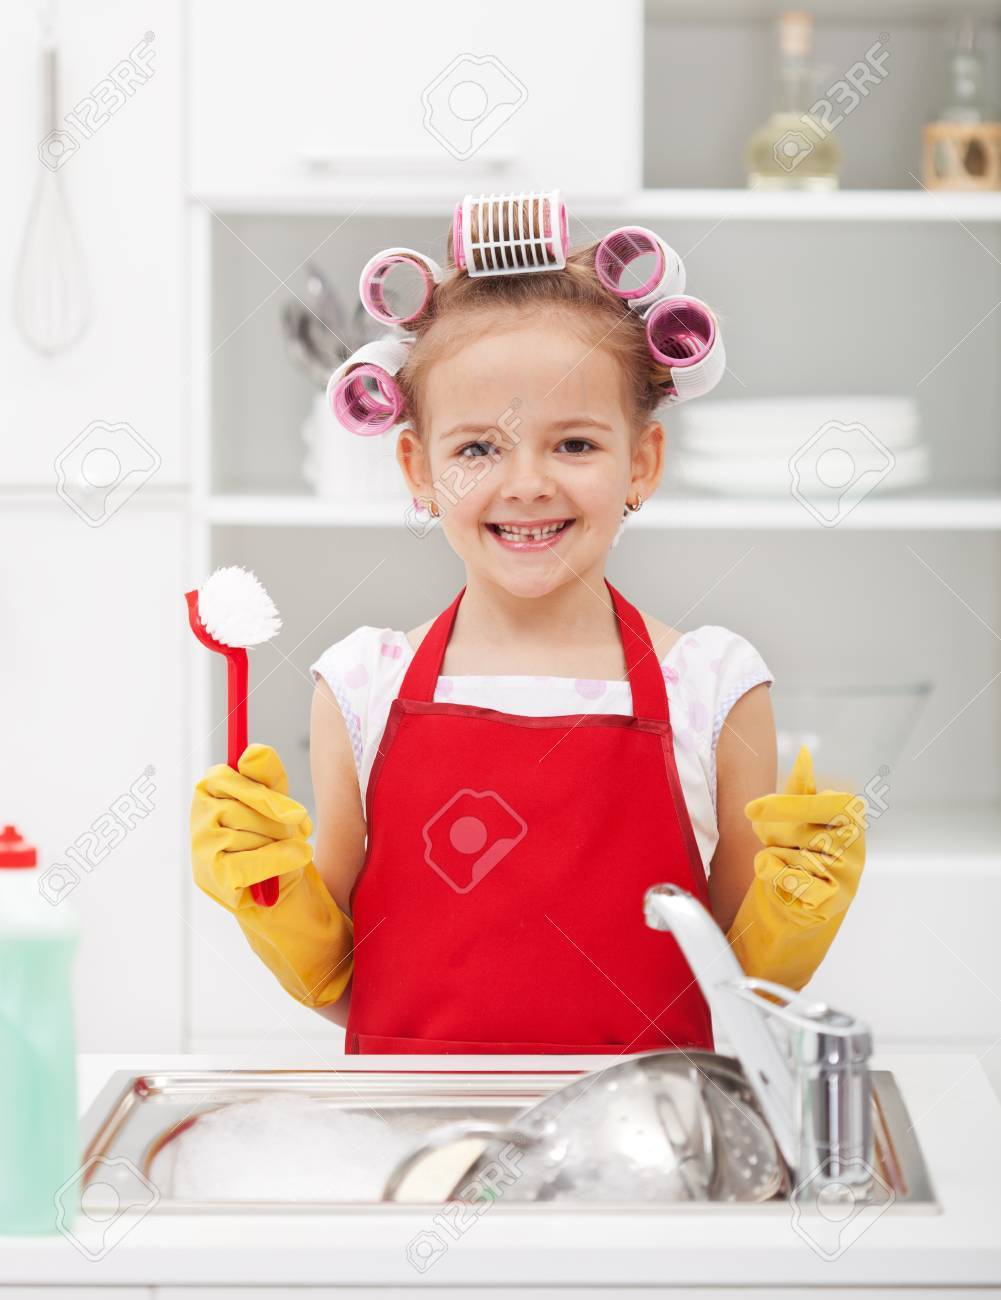 Happy housekeeping fairy - washing the dishes with a grin - 32127320